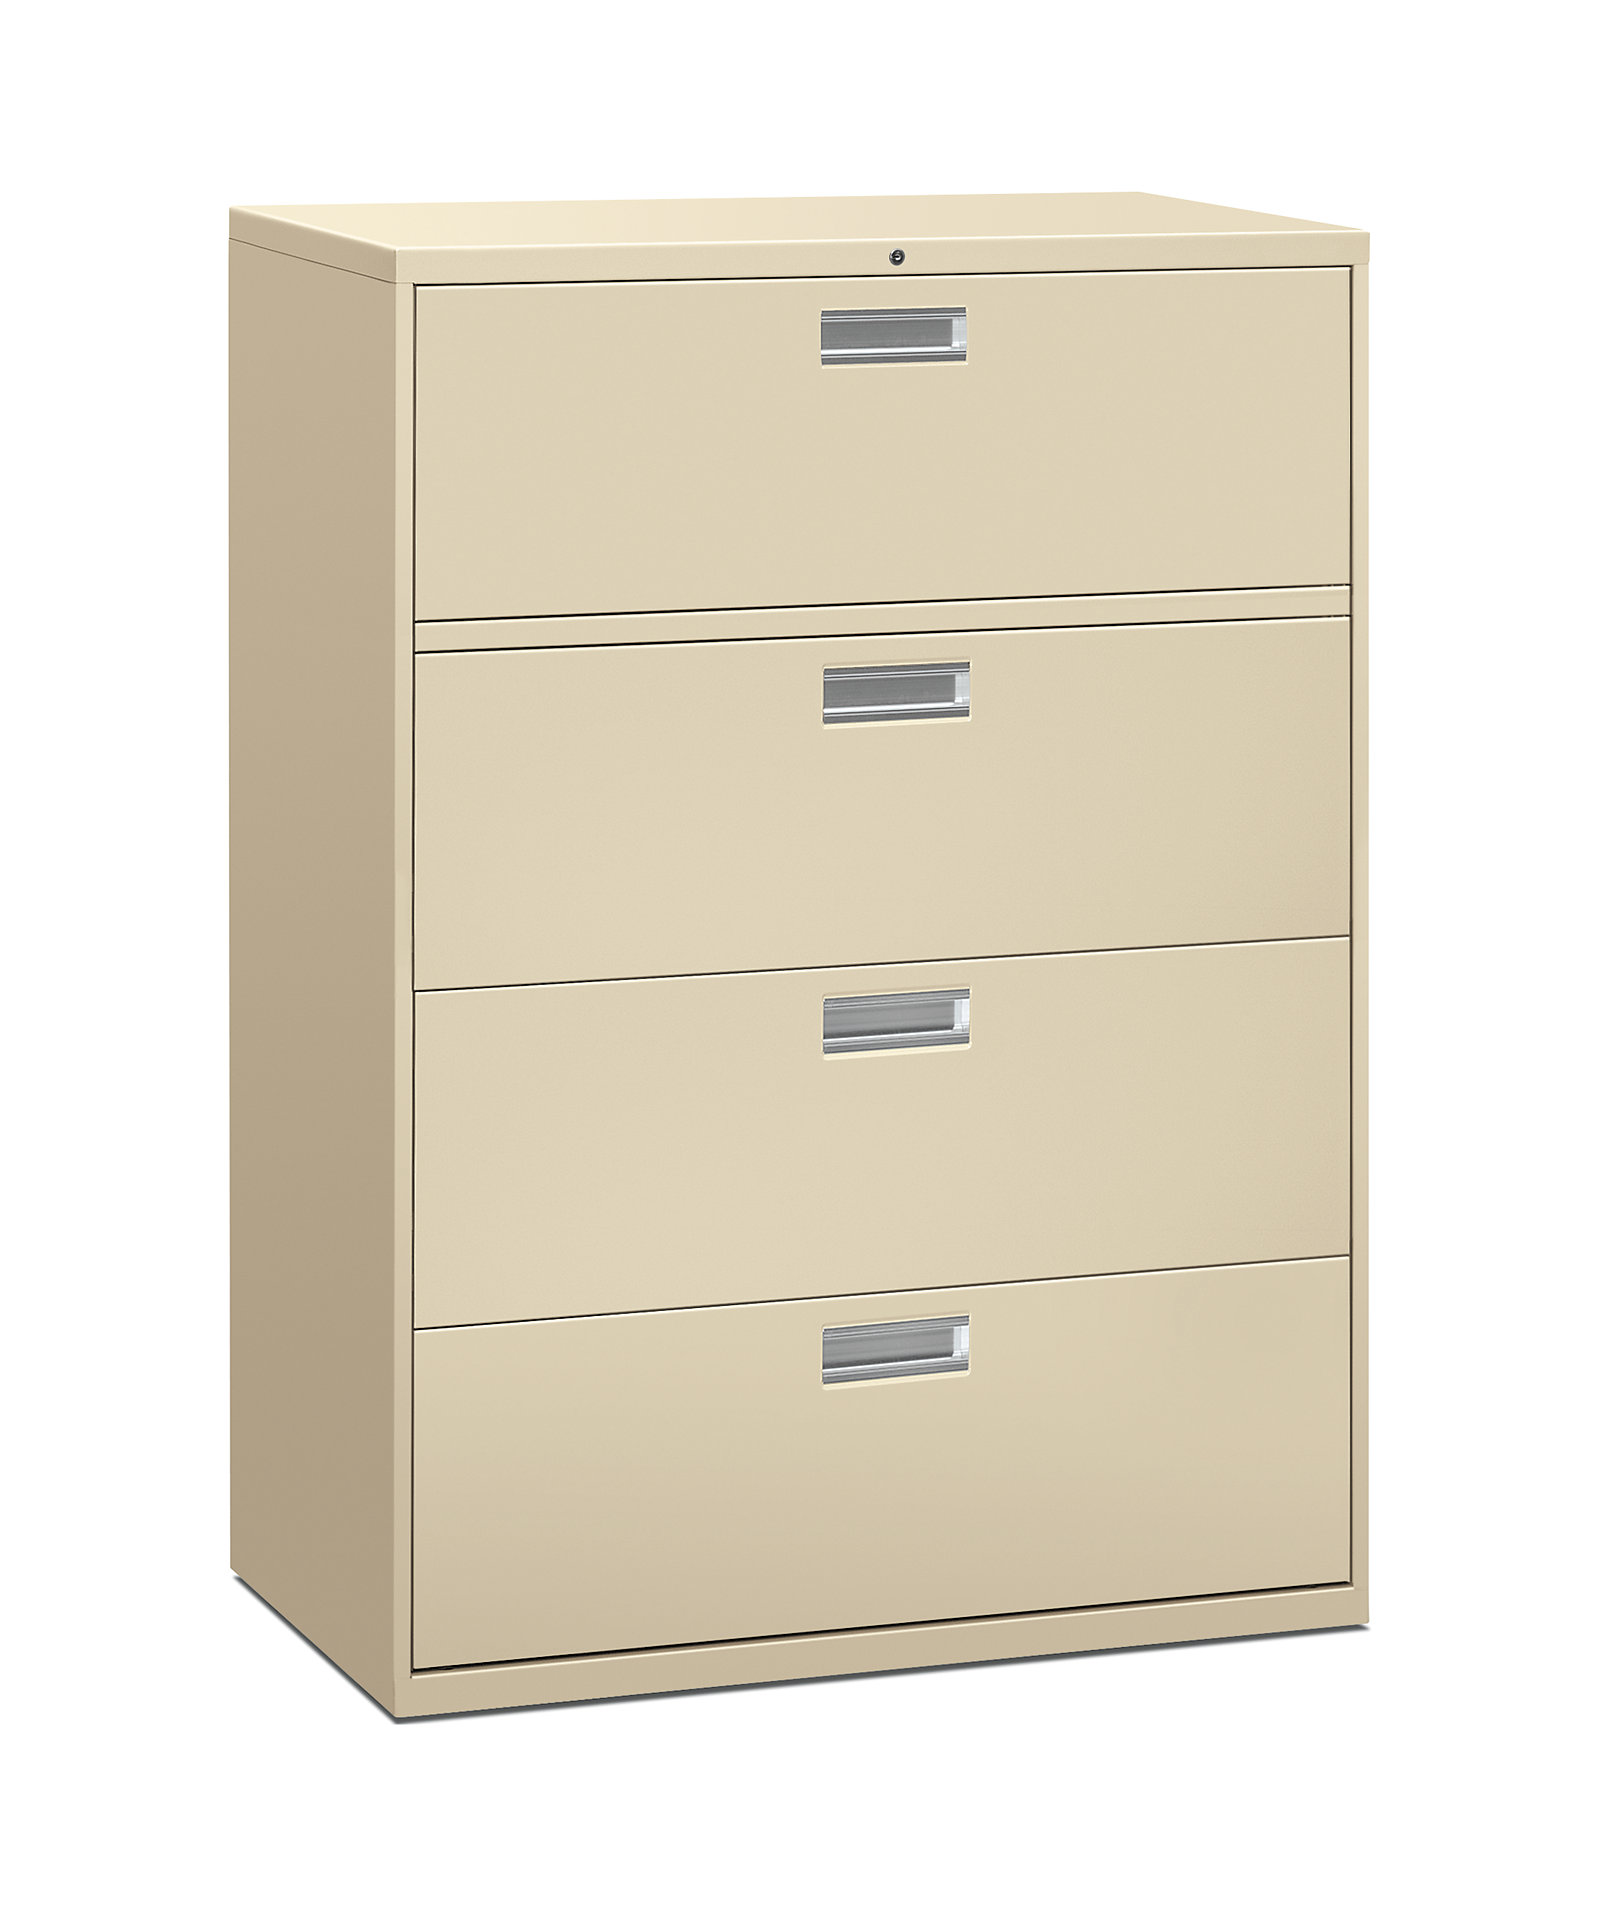 advice tips keys file cabinets of beautiful for filing hon colorful cabinet